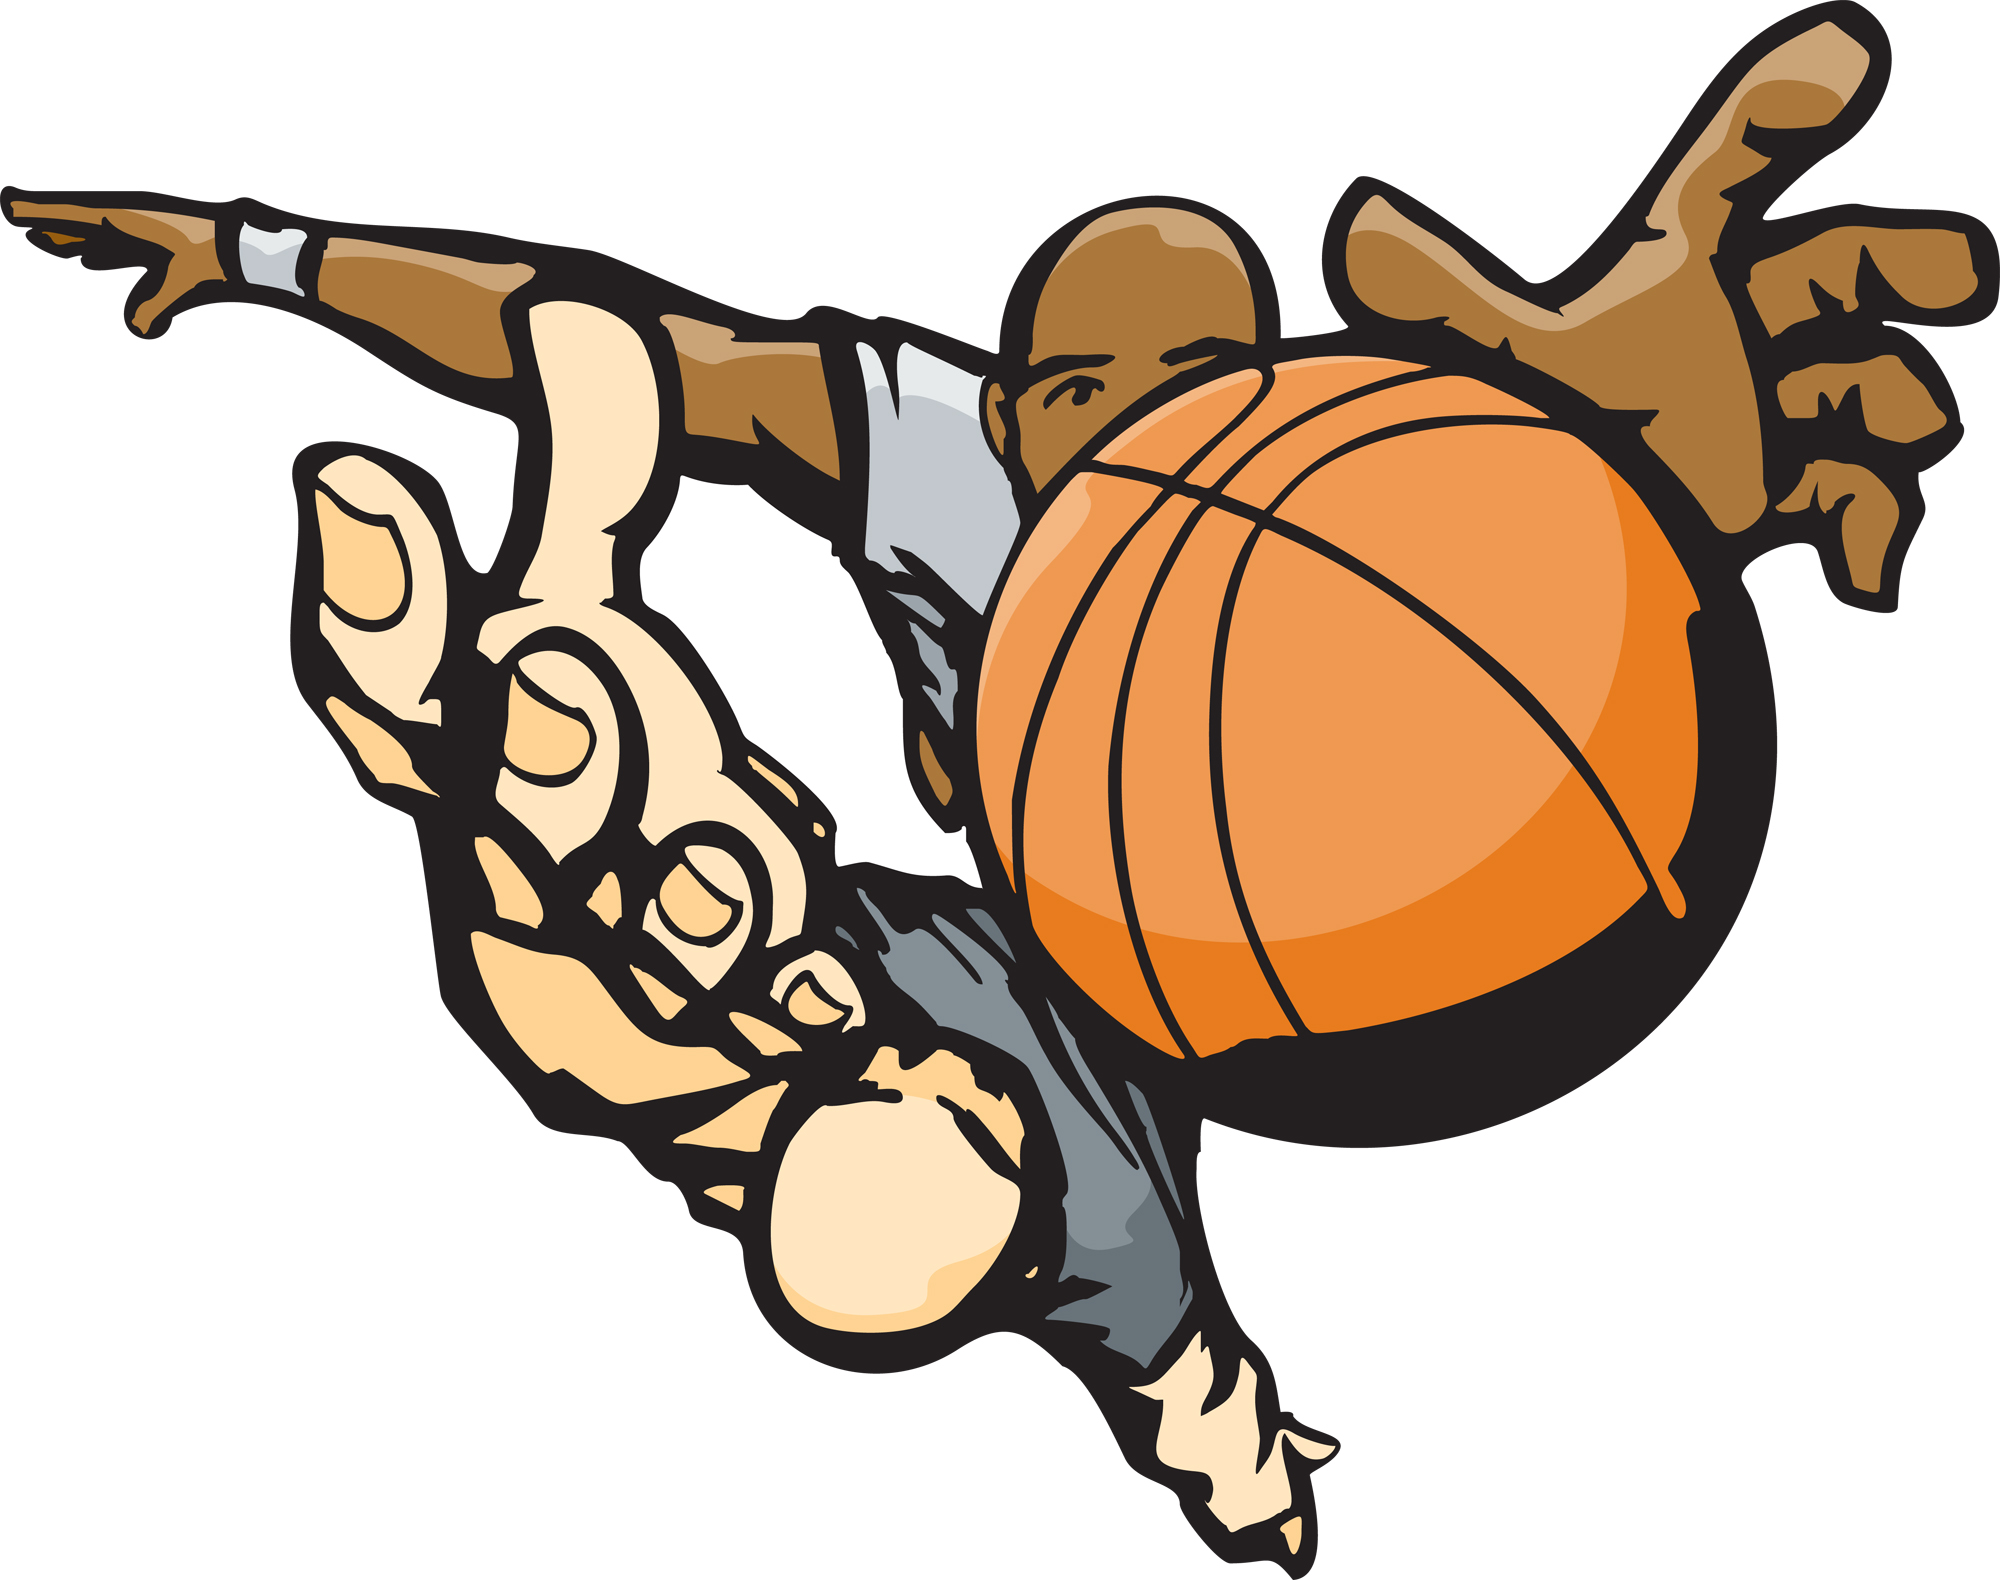 hight resolution of basketball game clipart